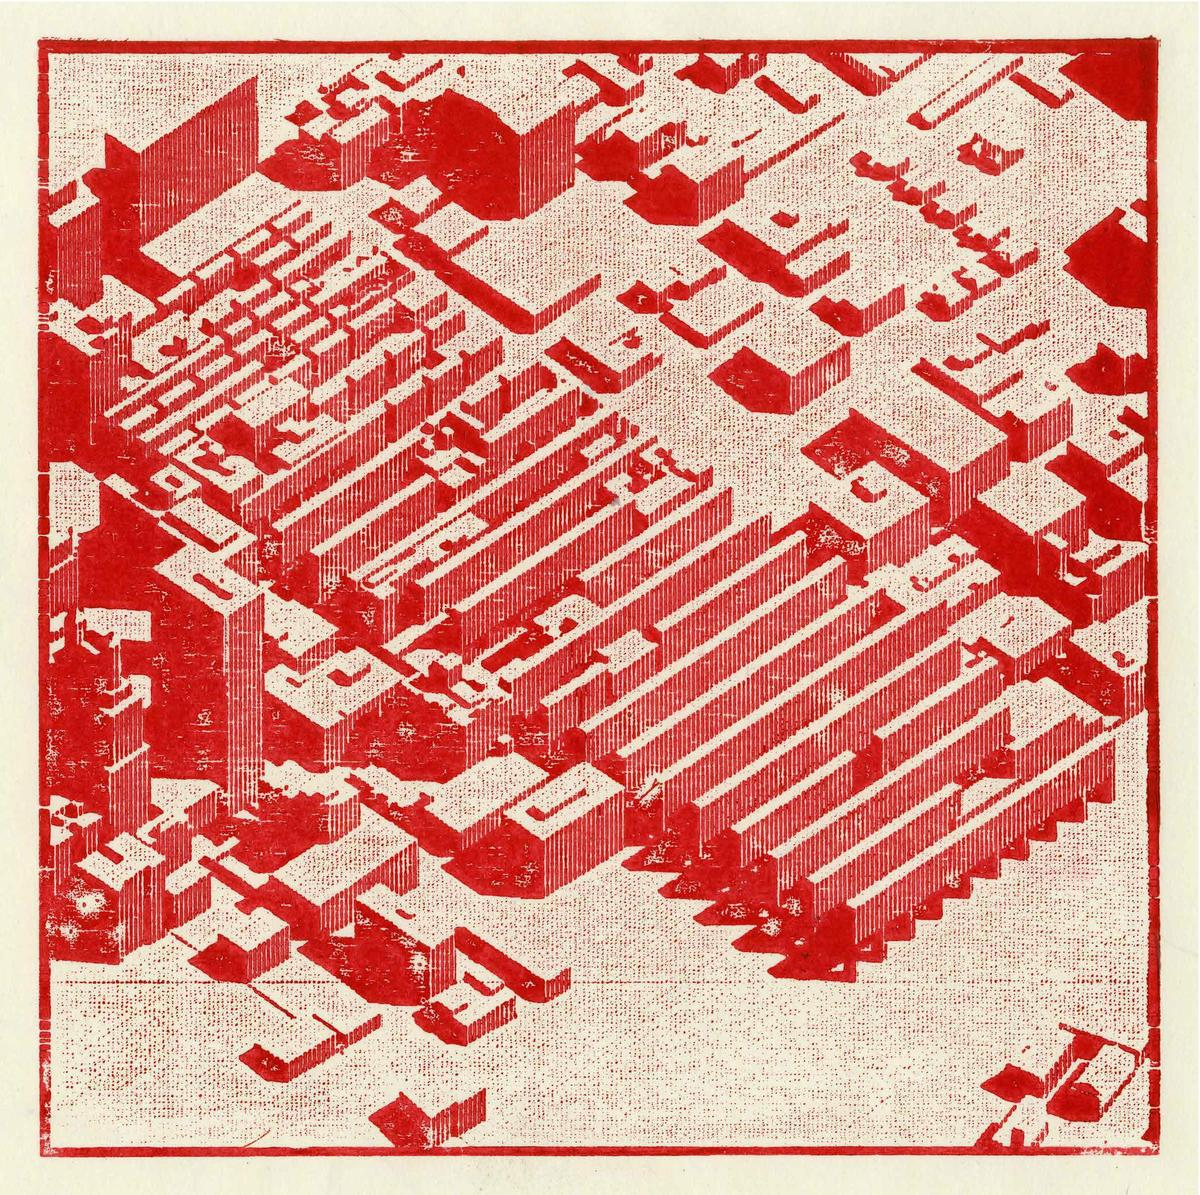 Axonometric of the Homestead territory within downtown Kansas City. Laser cut woodblock print. Image: Andrew Bruno